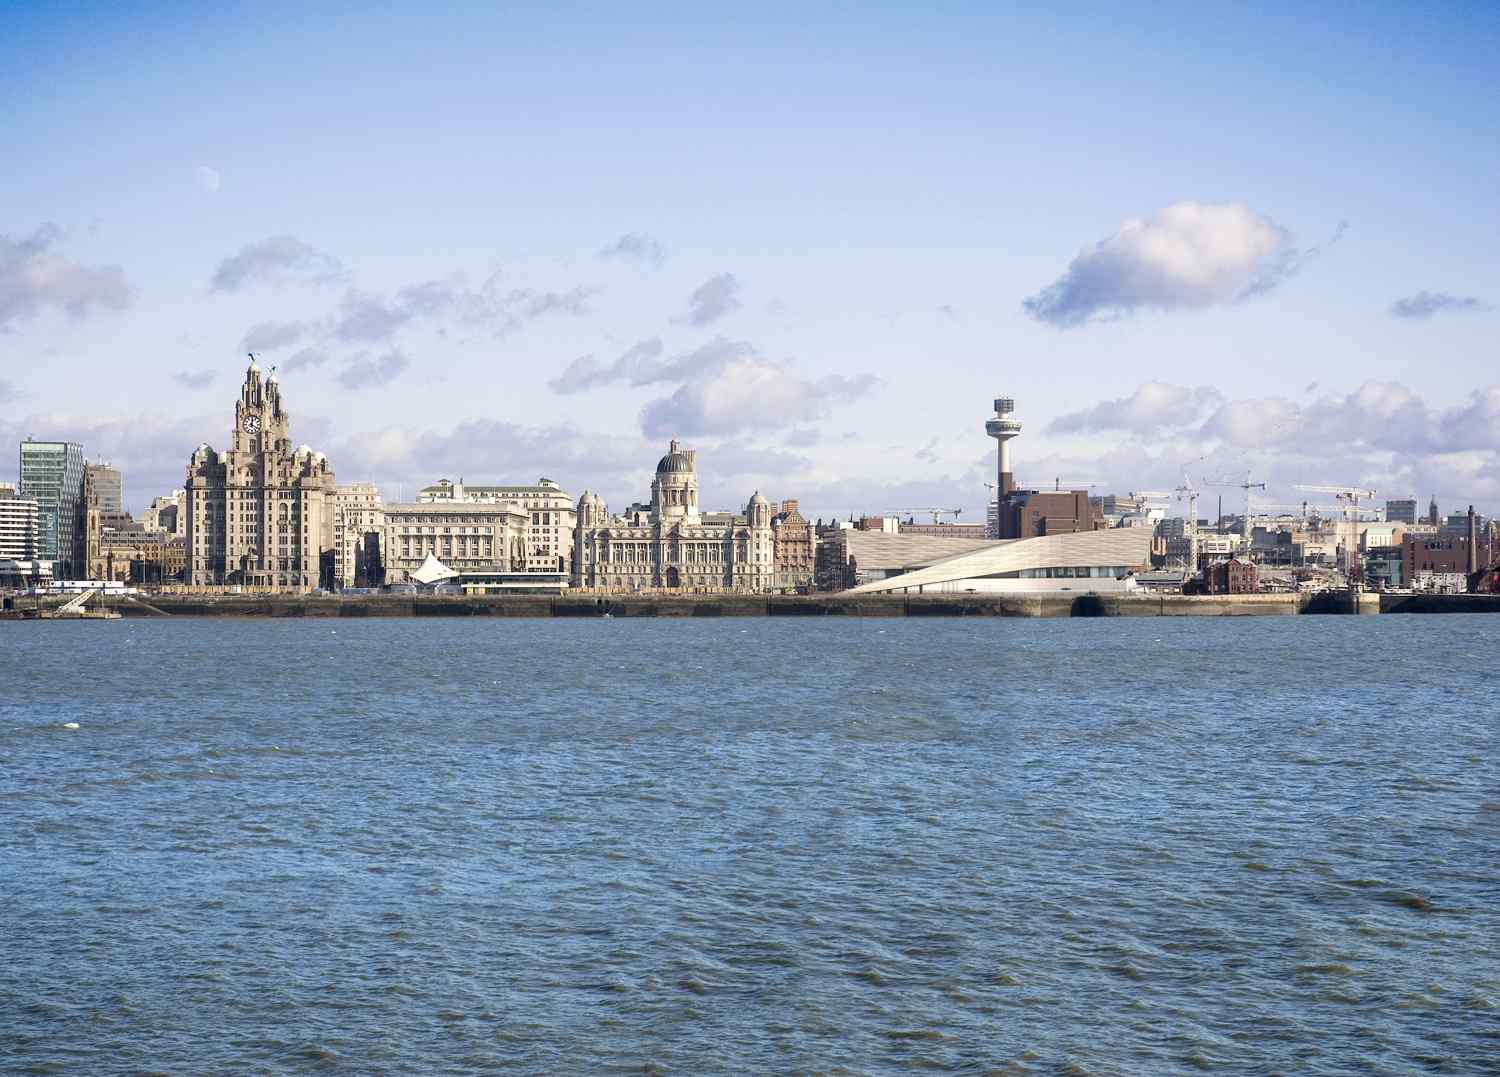 Building the Museum of Liverpool